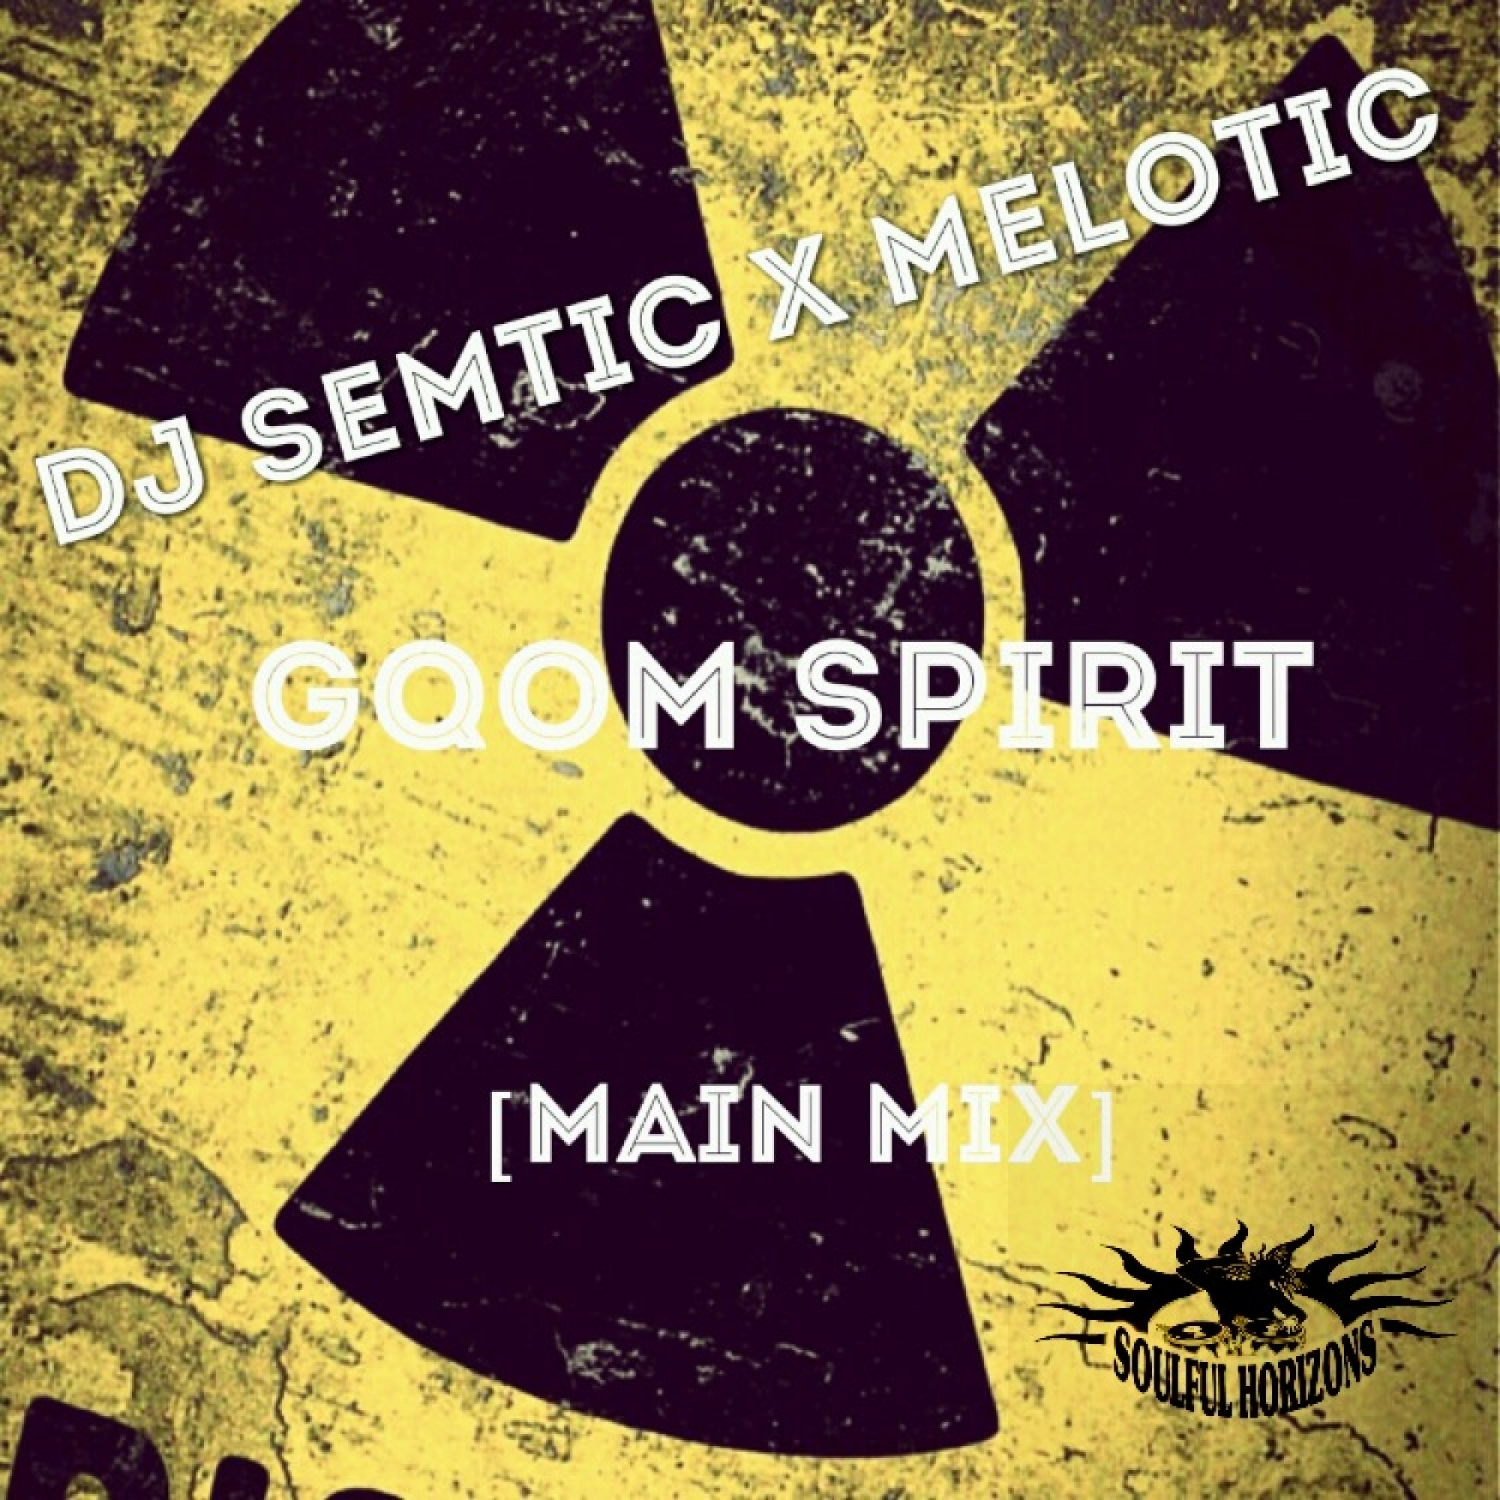 DJ Semtic & Melotic - Gqom Spirit (Main Mix)